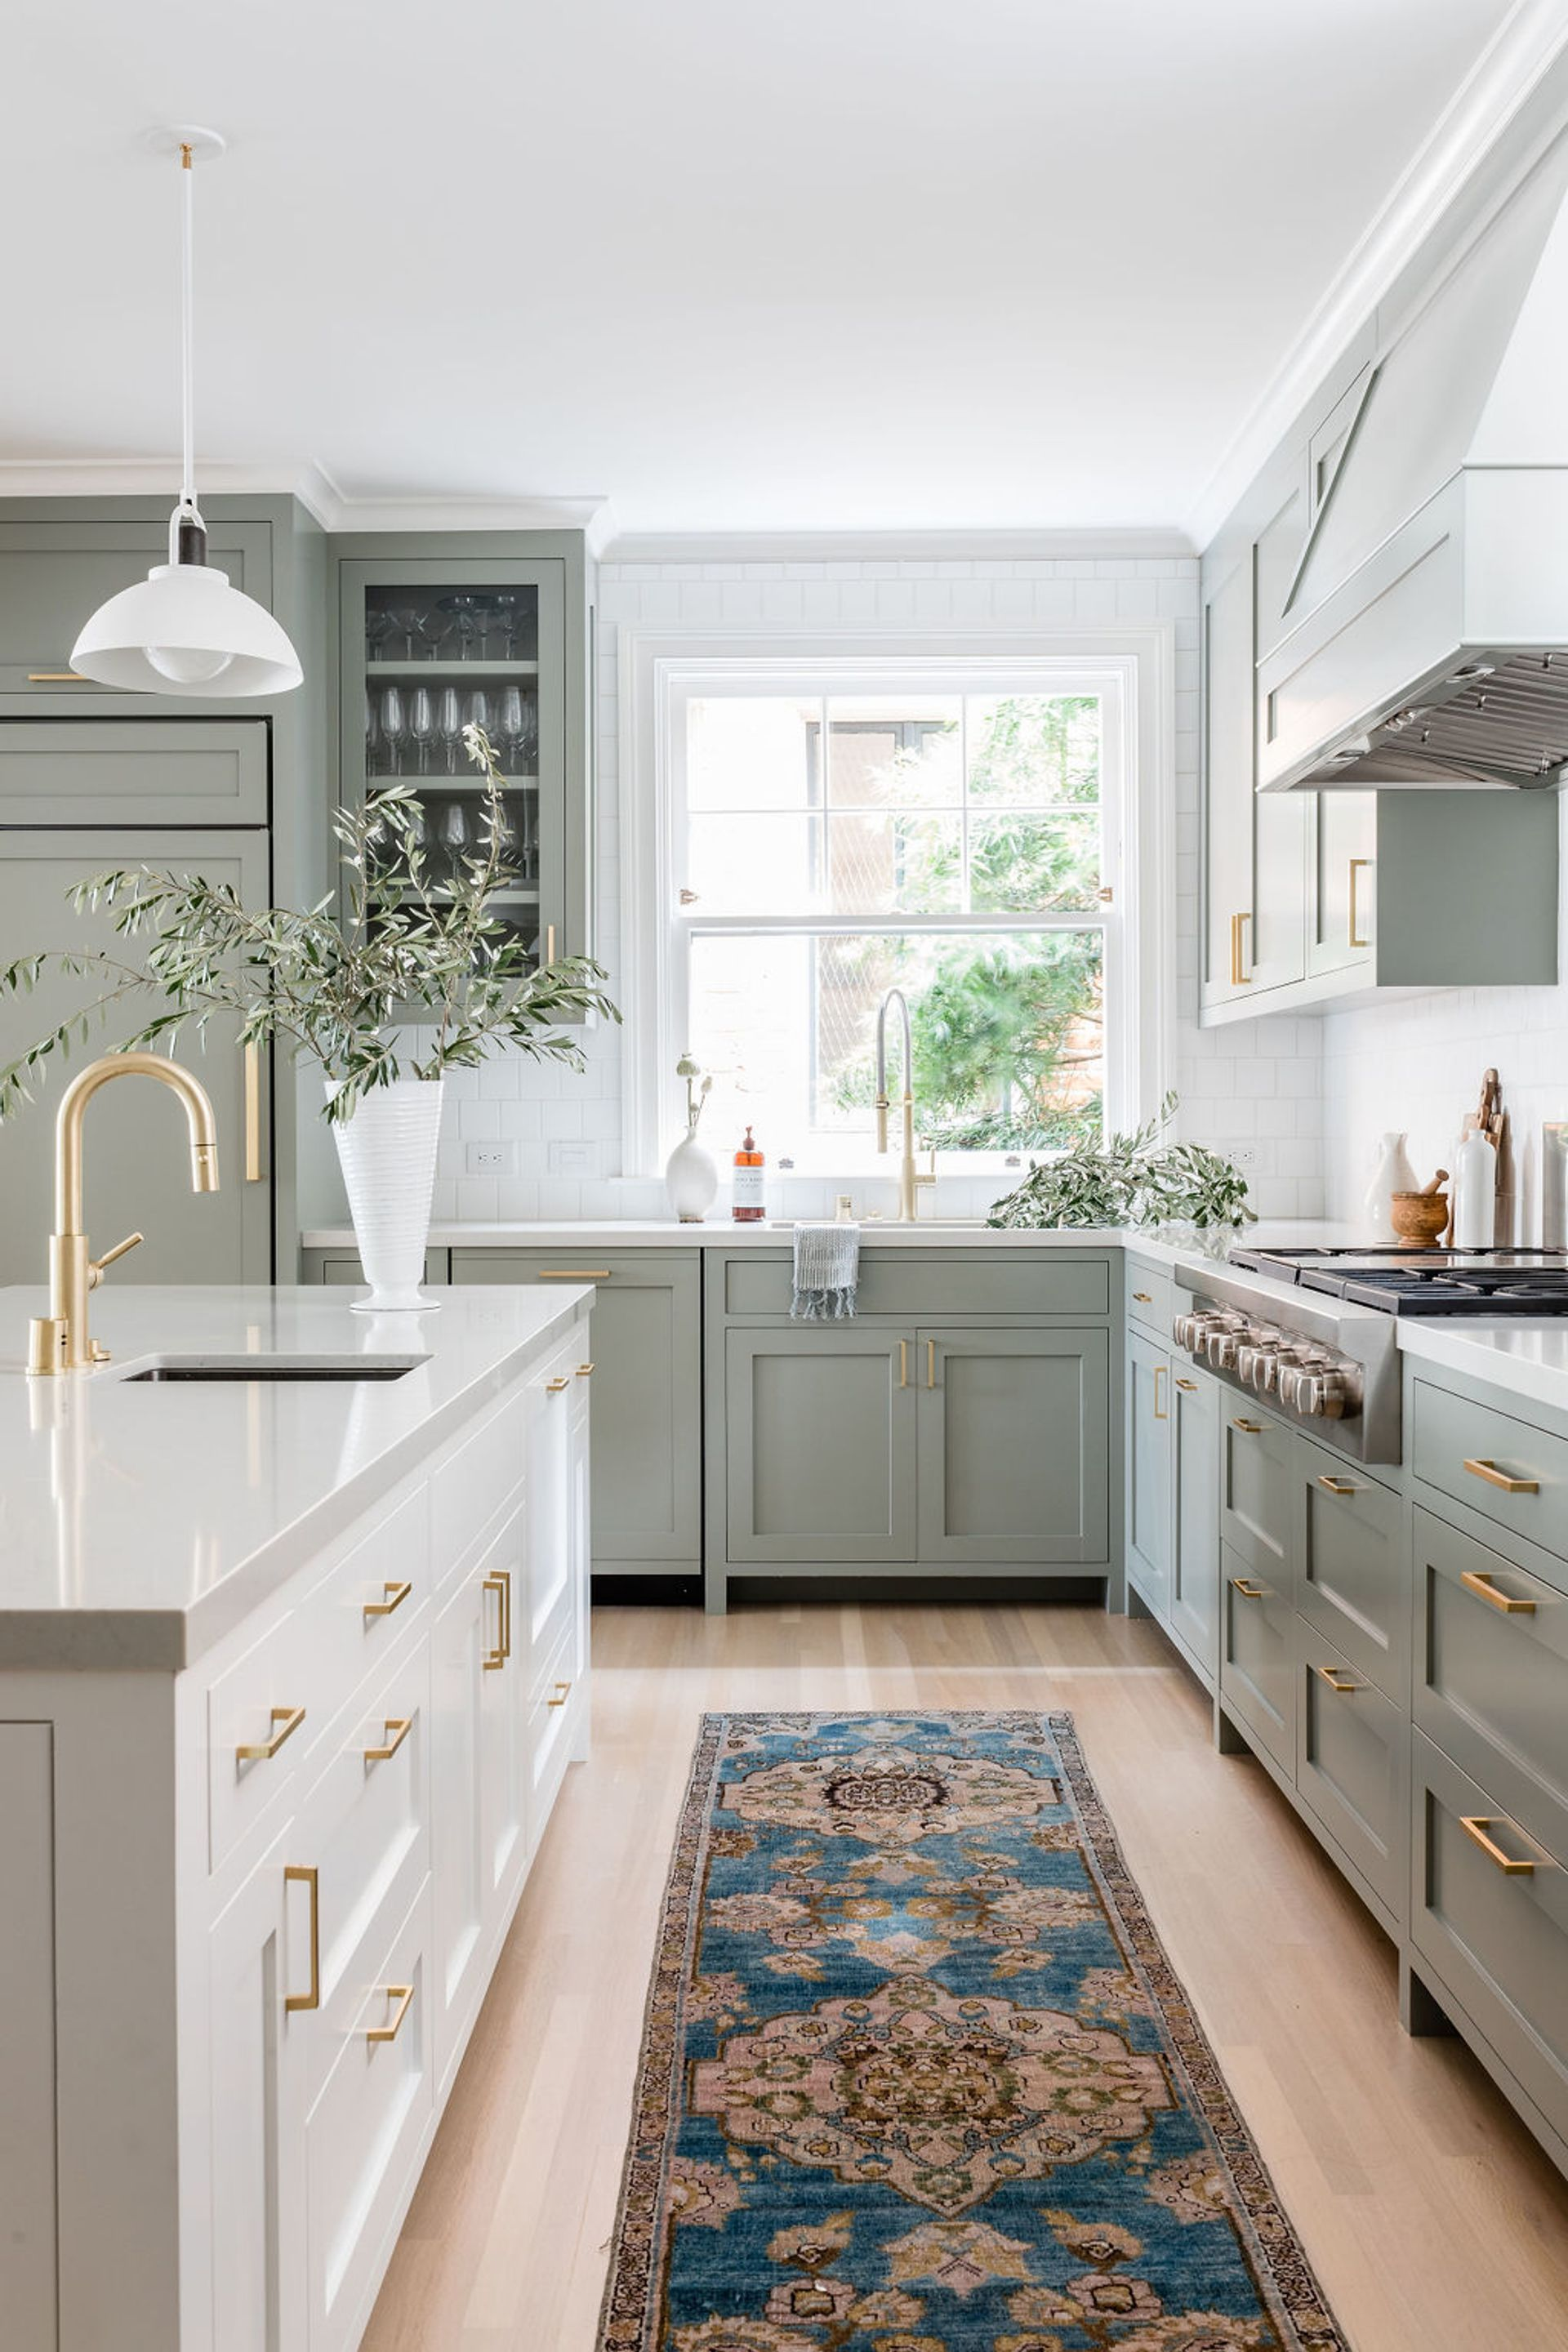 Top Interior Design Trends of 2020: From Home Offices to Two-Tone Kitchens